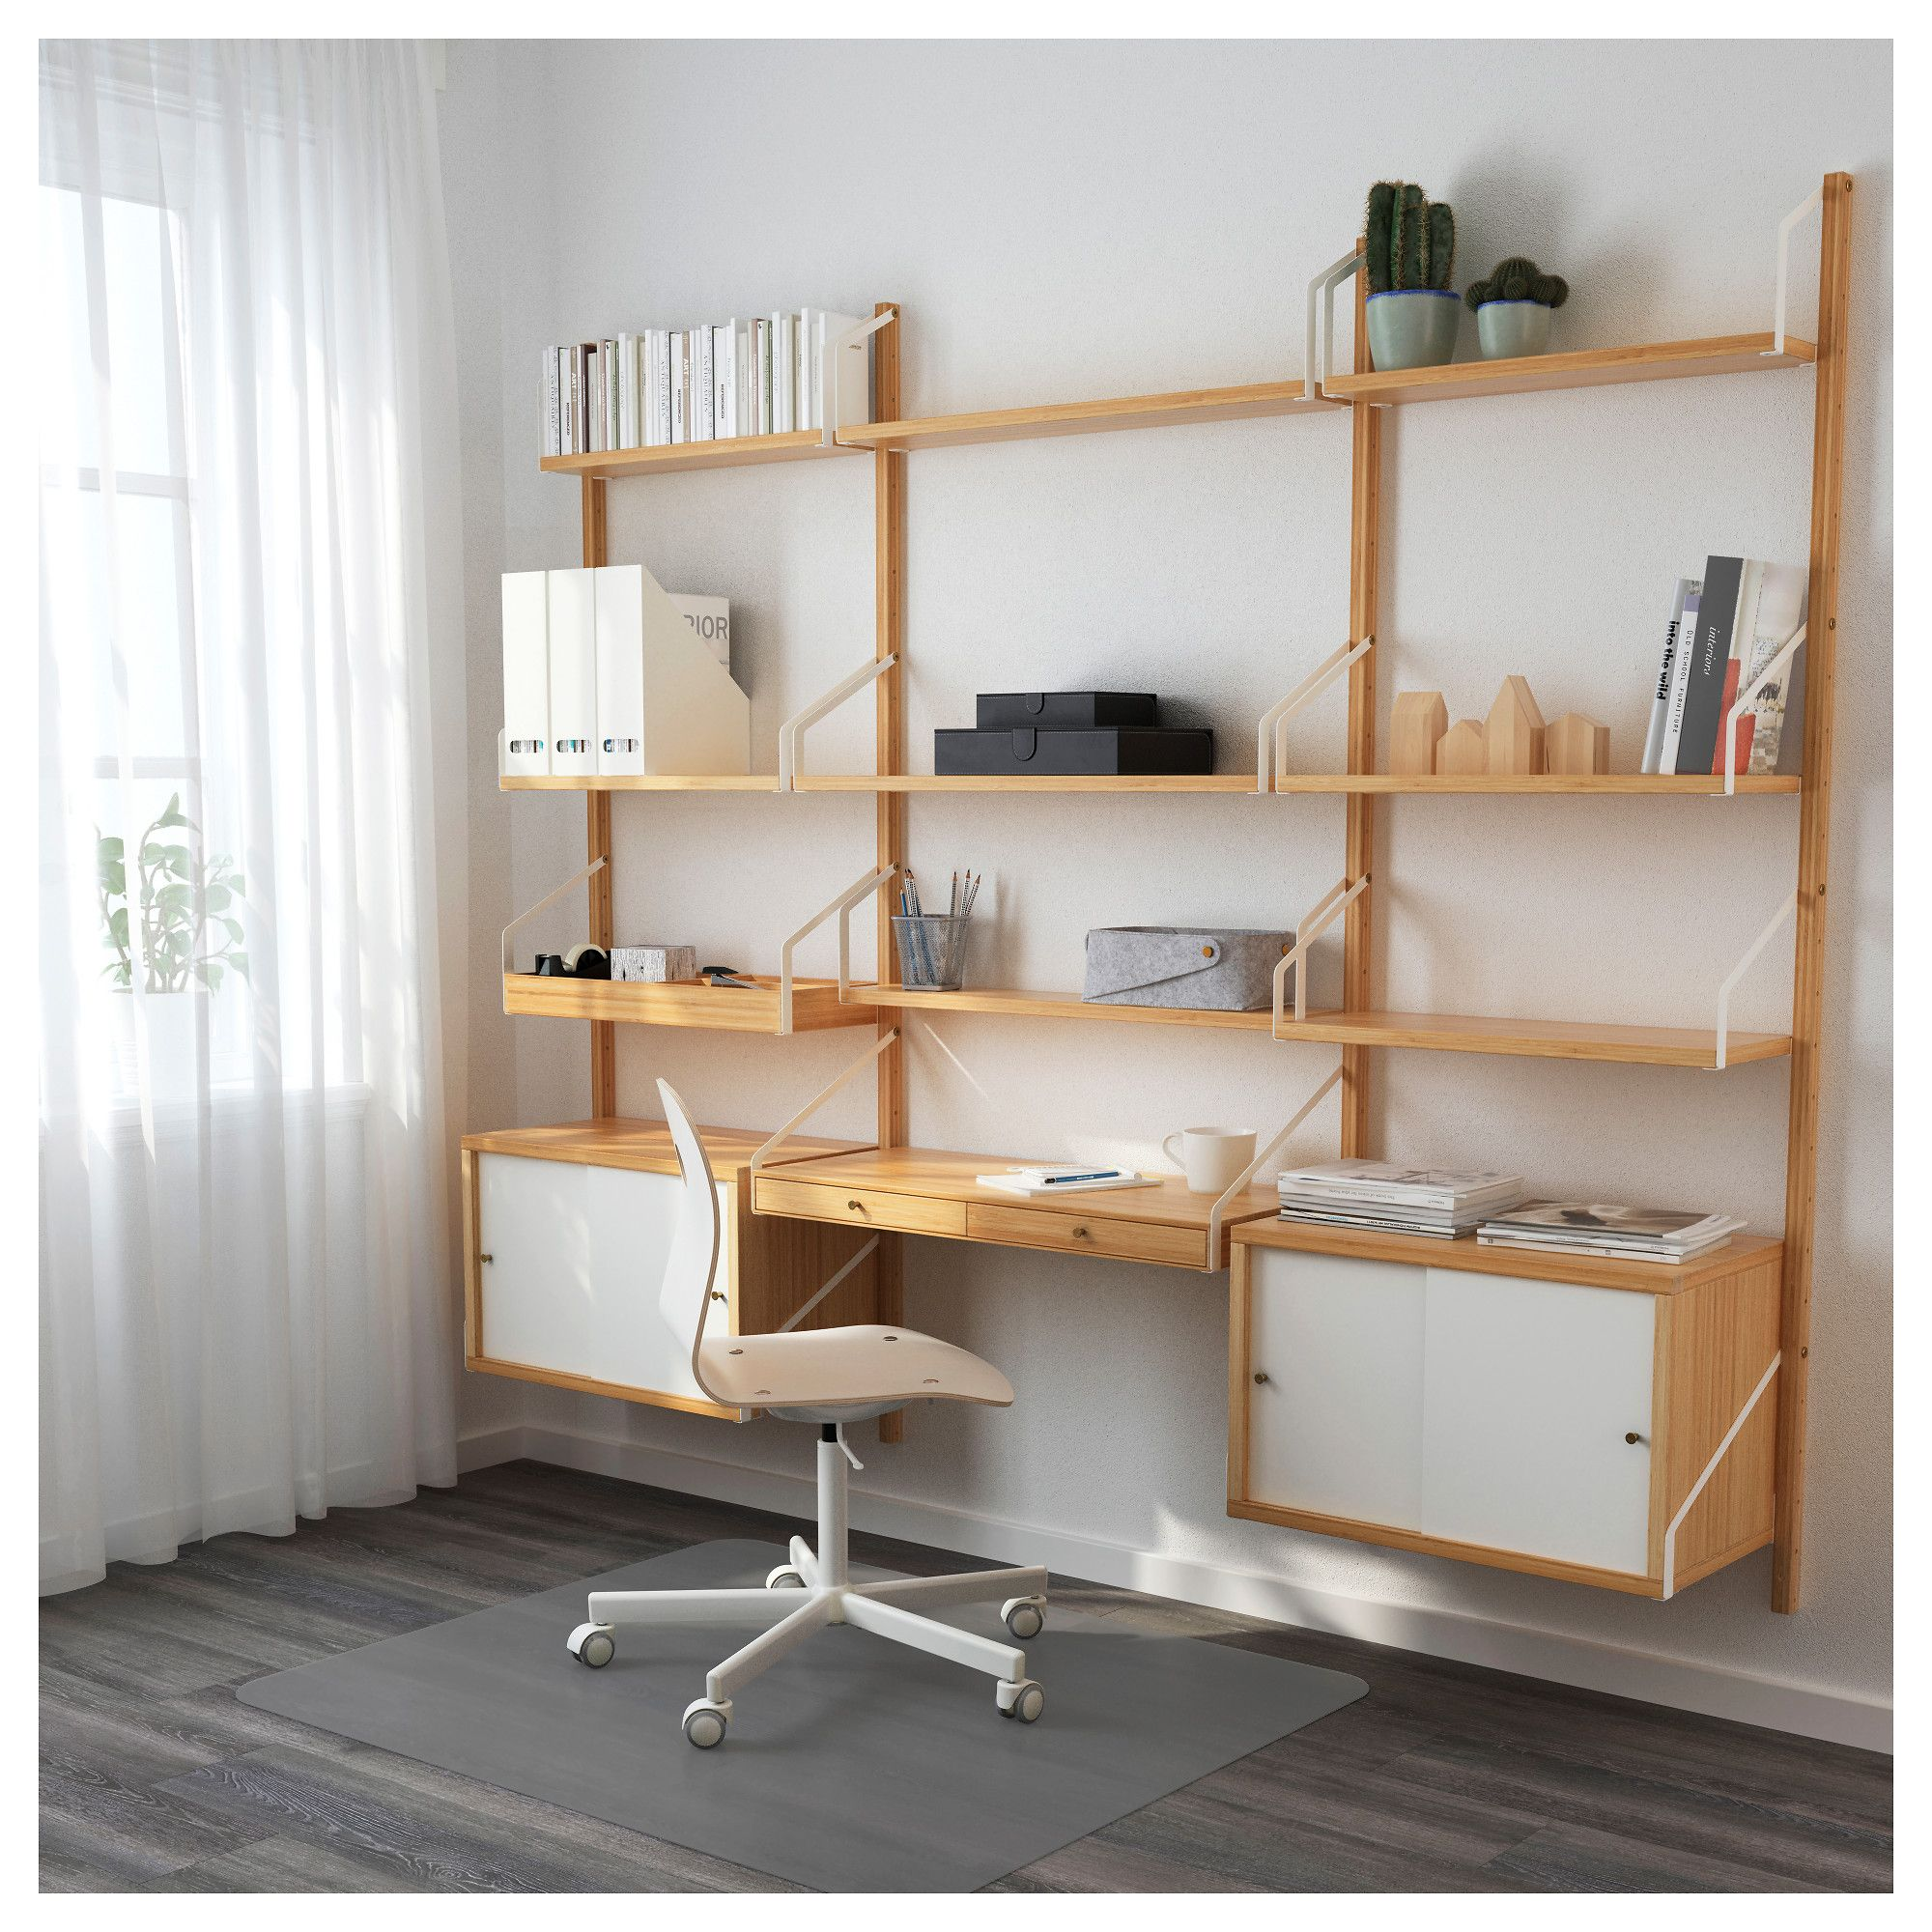 Furniture and Home Furnishings Floating shelves kitchen